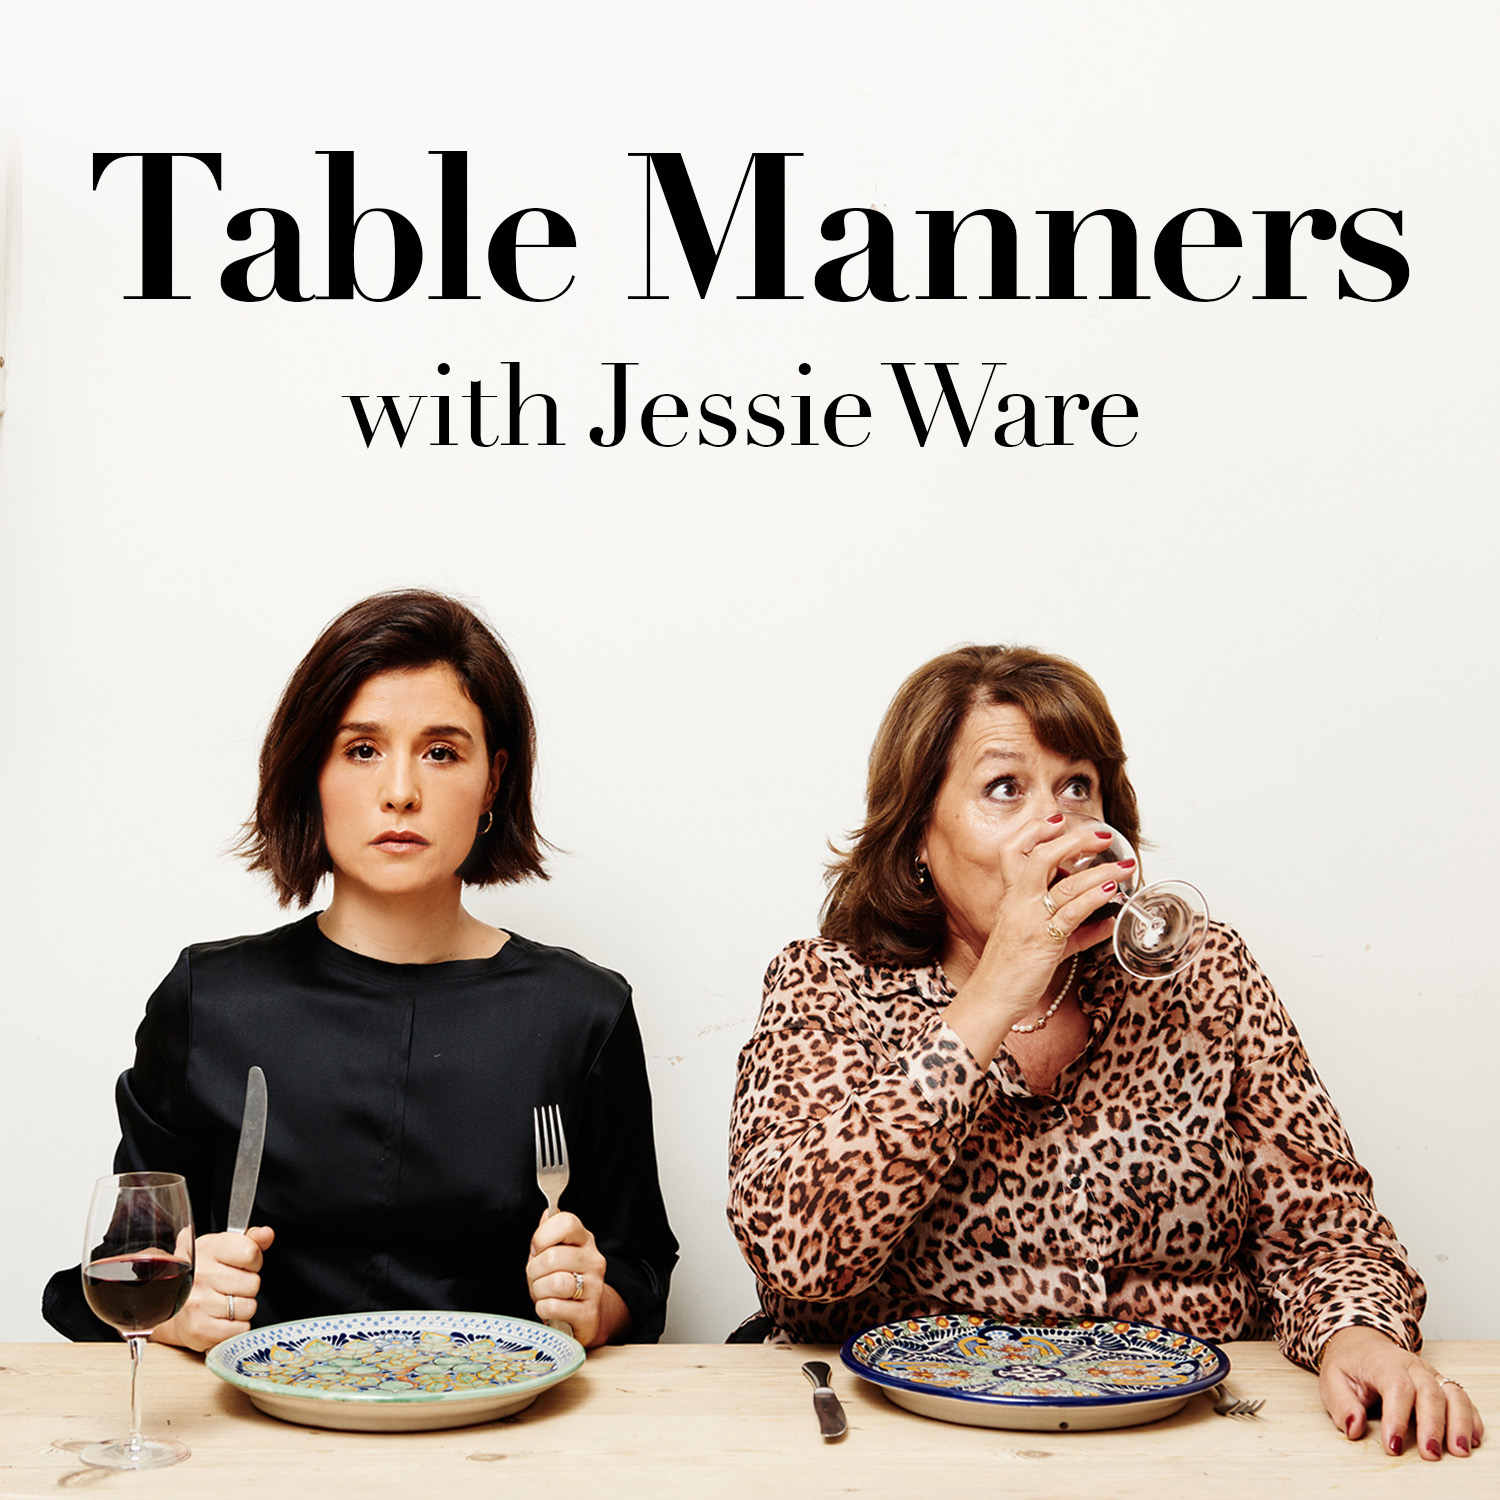 """""""Table Manners"""" by Jessie Ware"""